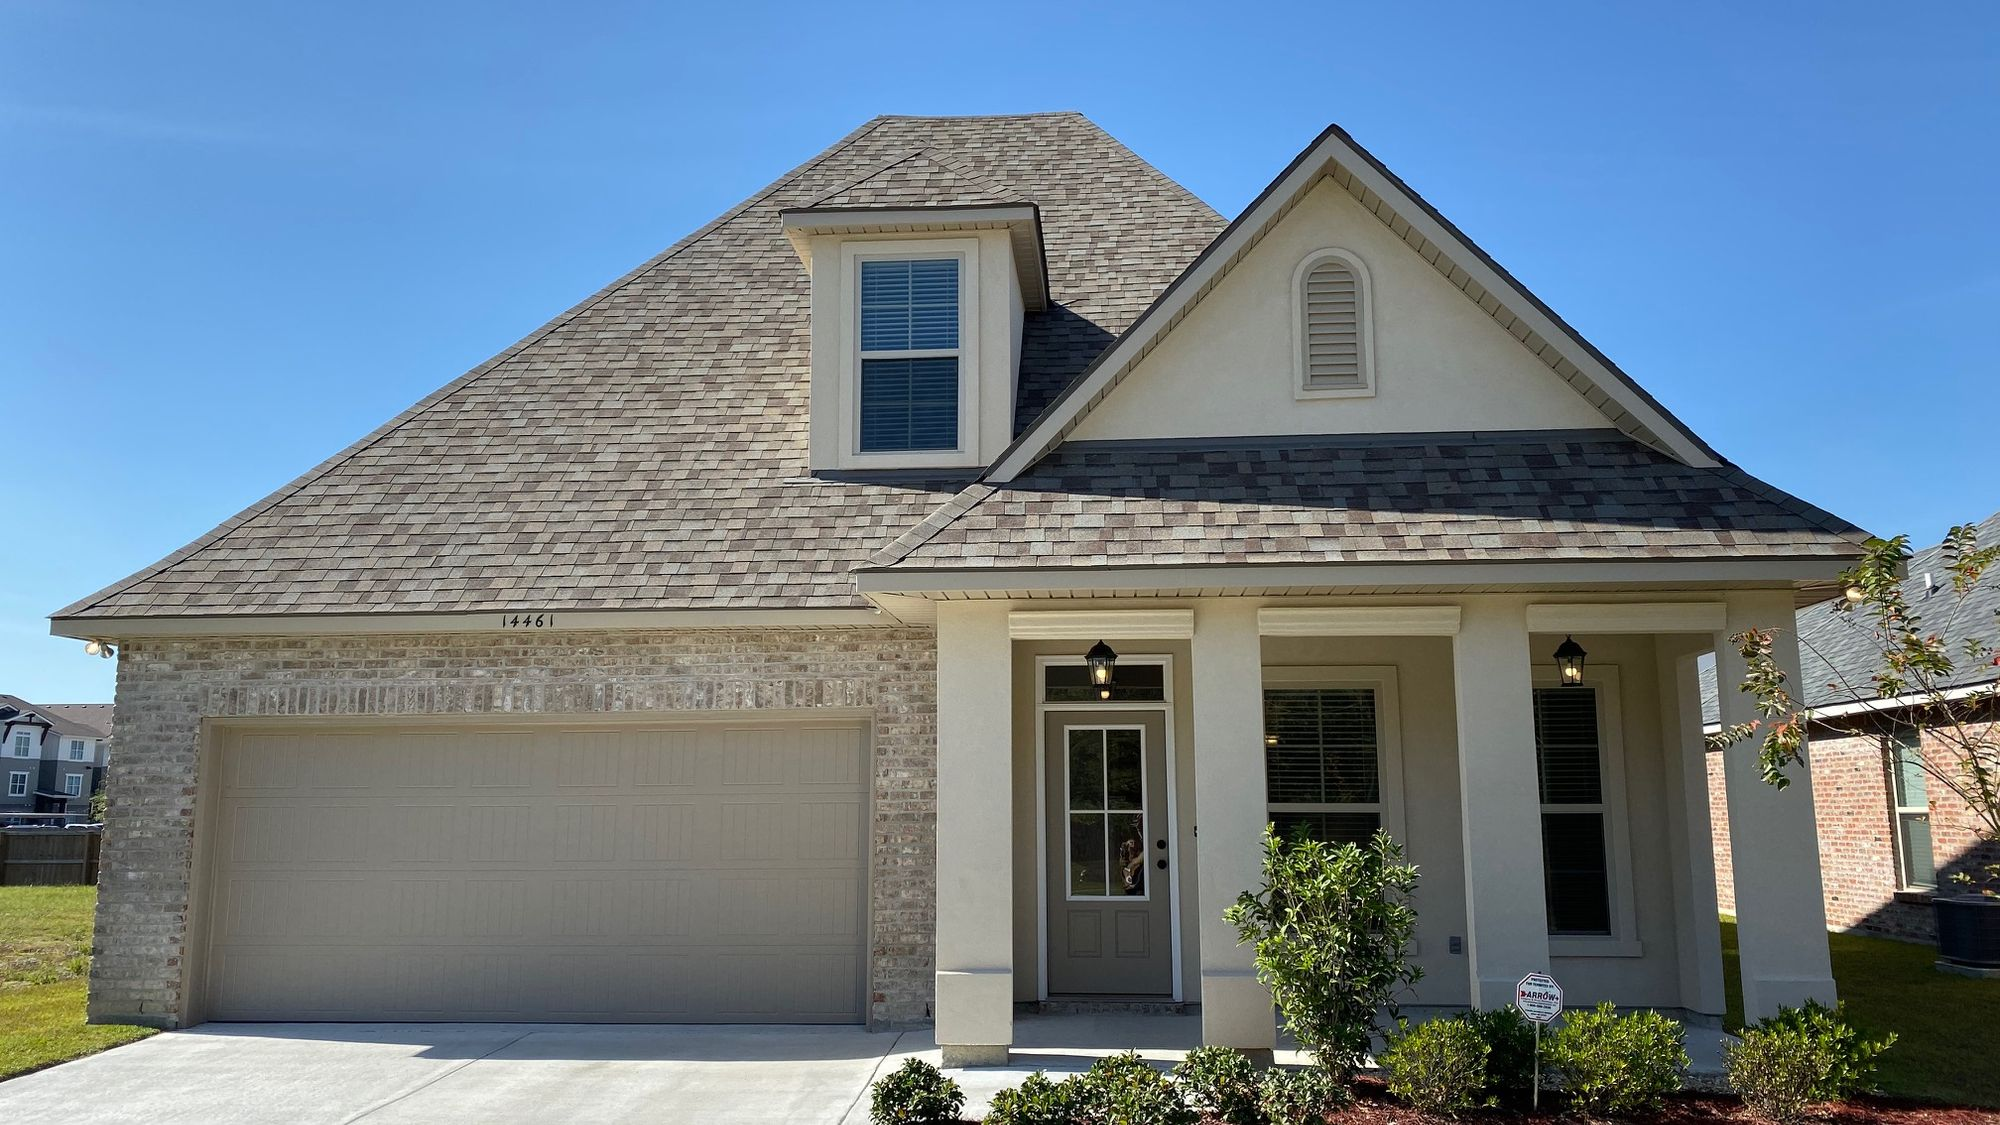 Front view - Silver Oaks Community - DSLD Homes Gonzales